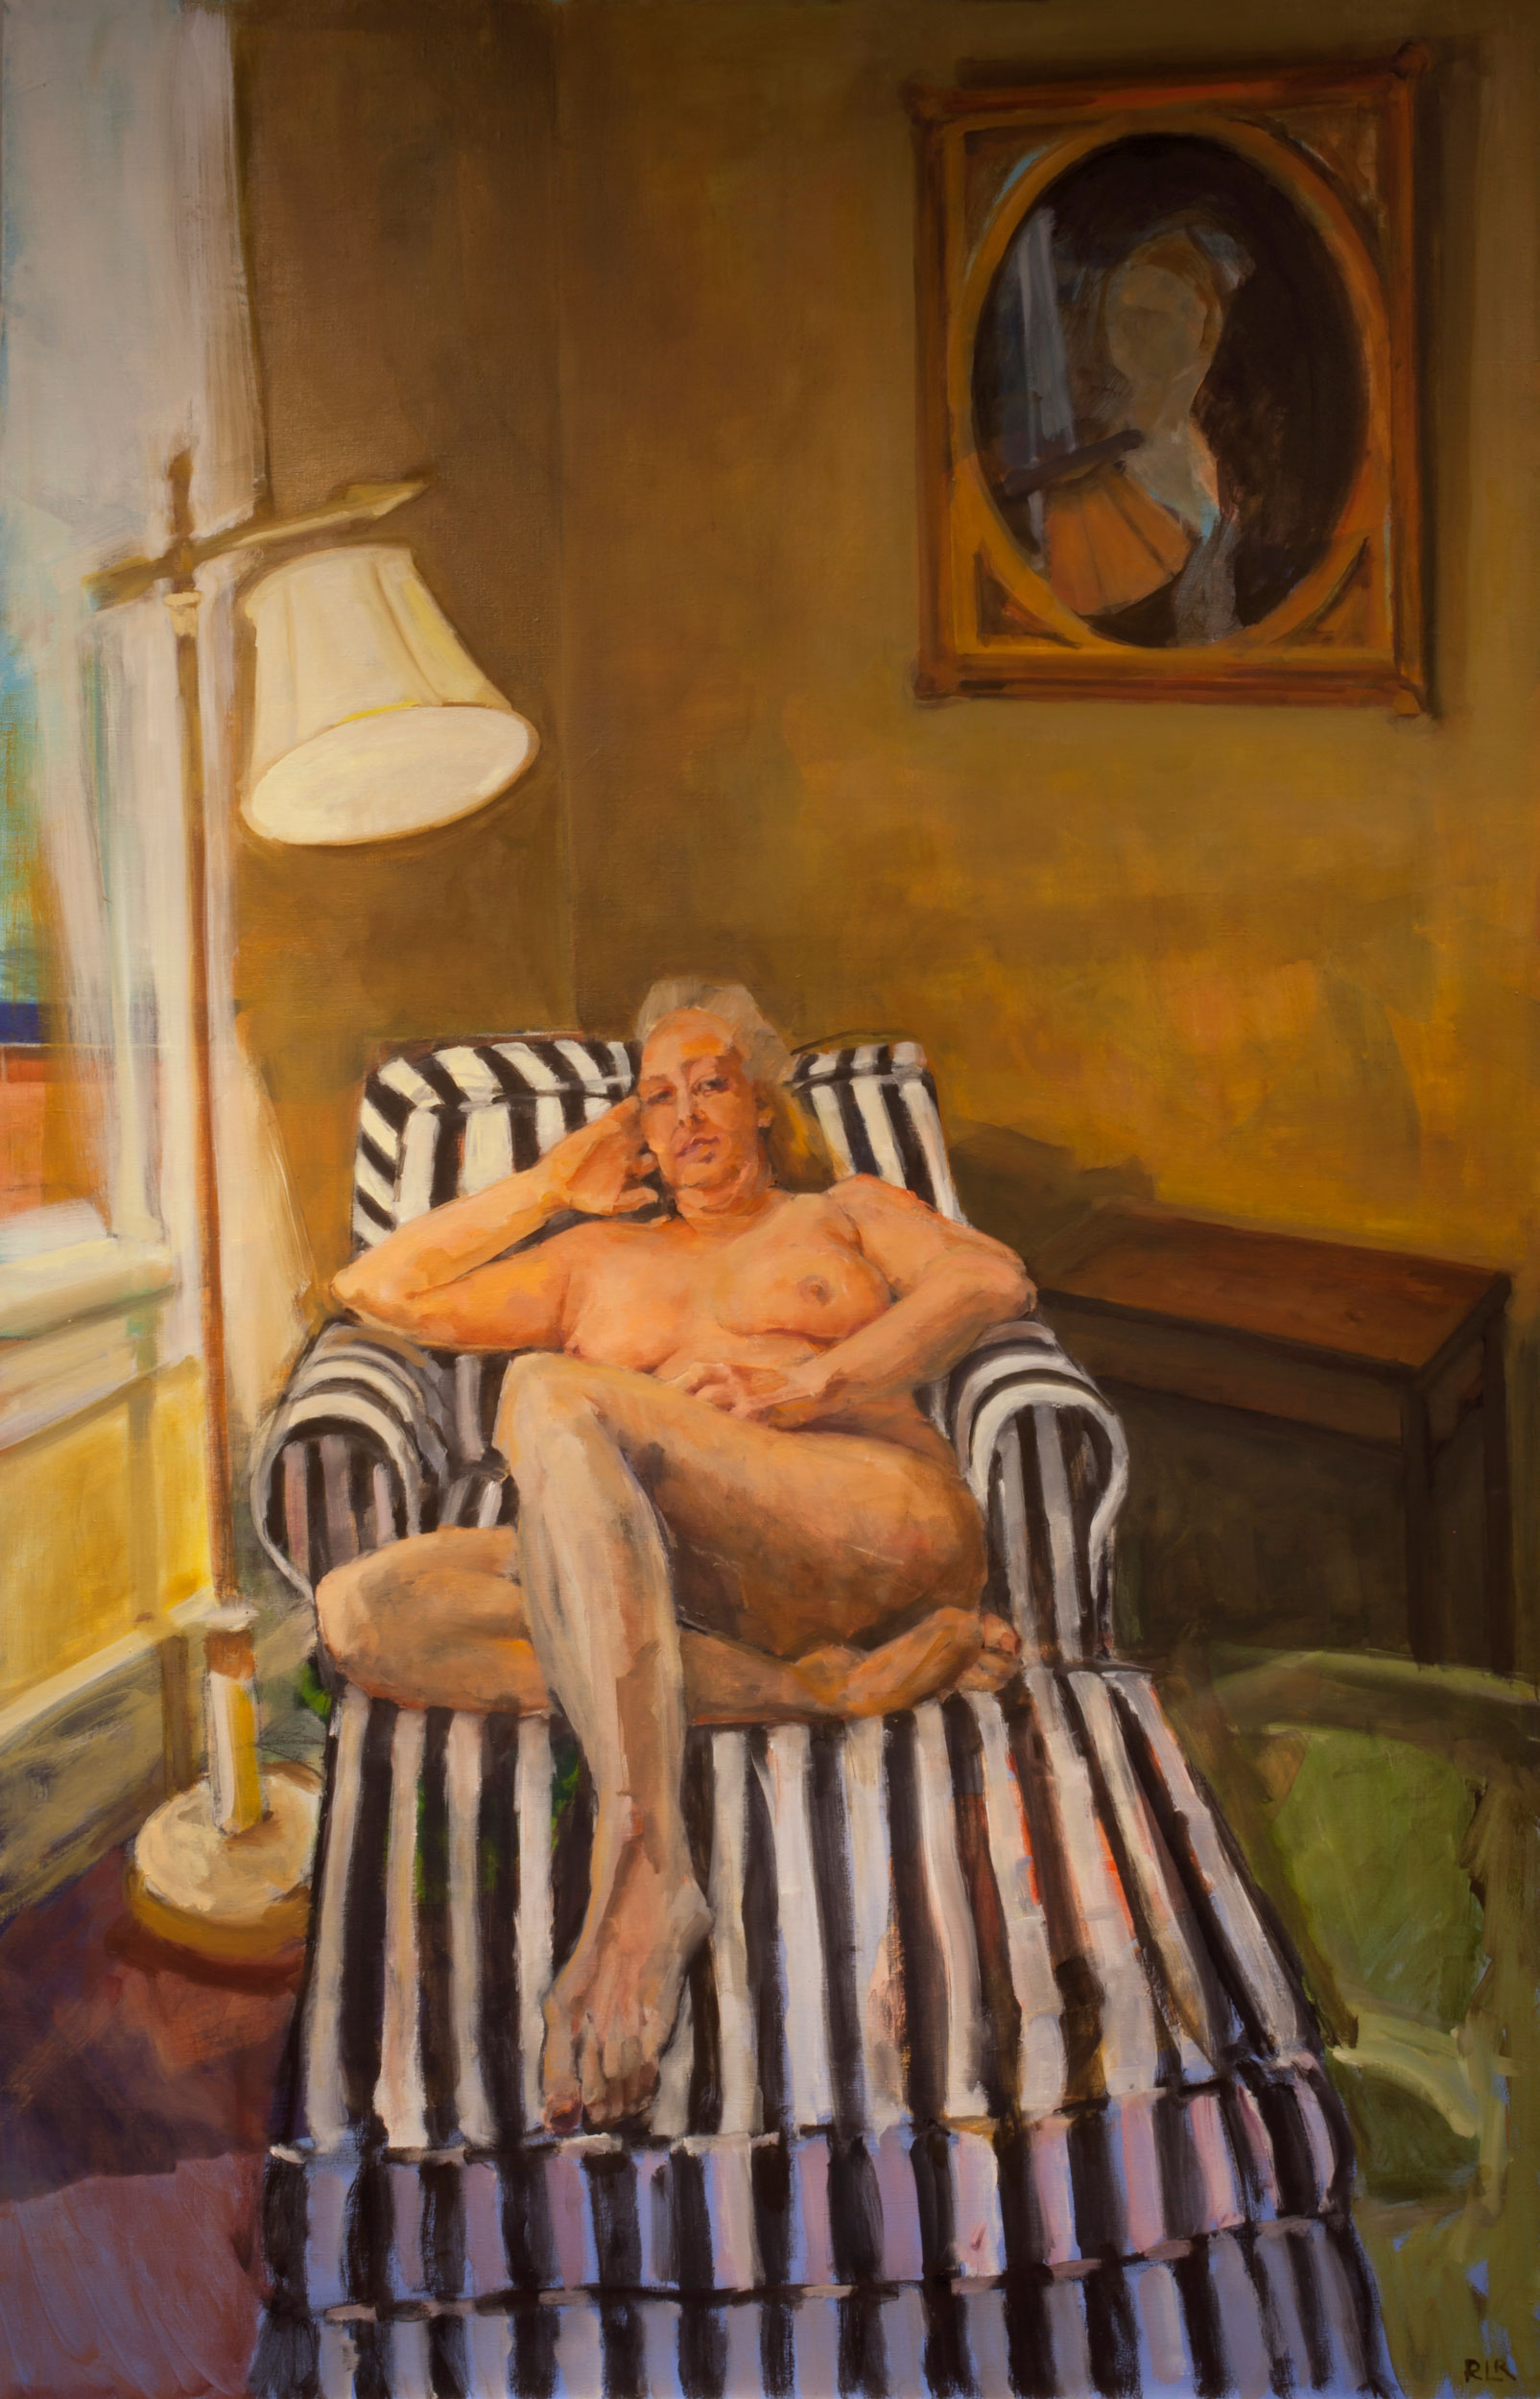 Woman on couch 2017 , oil on canvas, 44 x 68 in.| Photo by Tasha Ostrander©2017